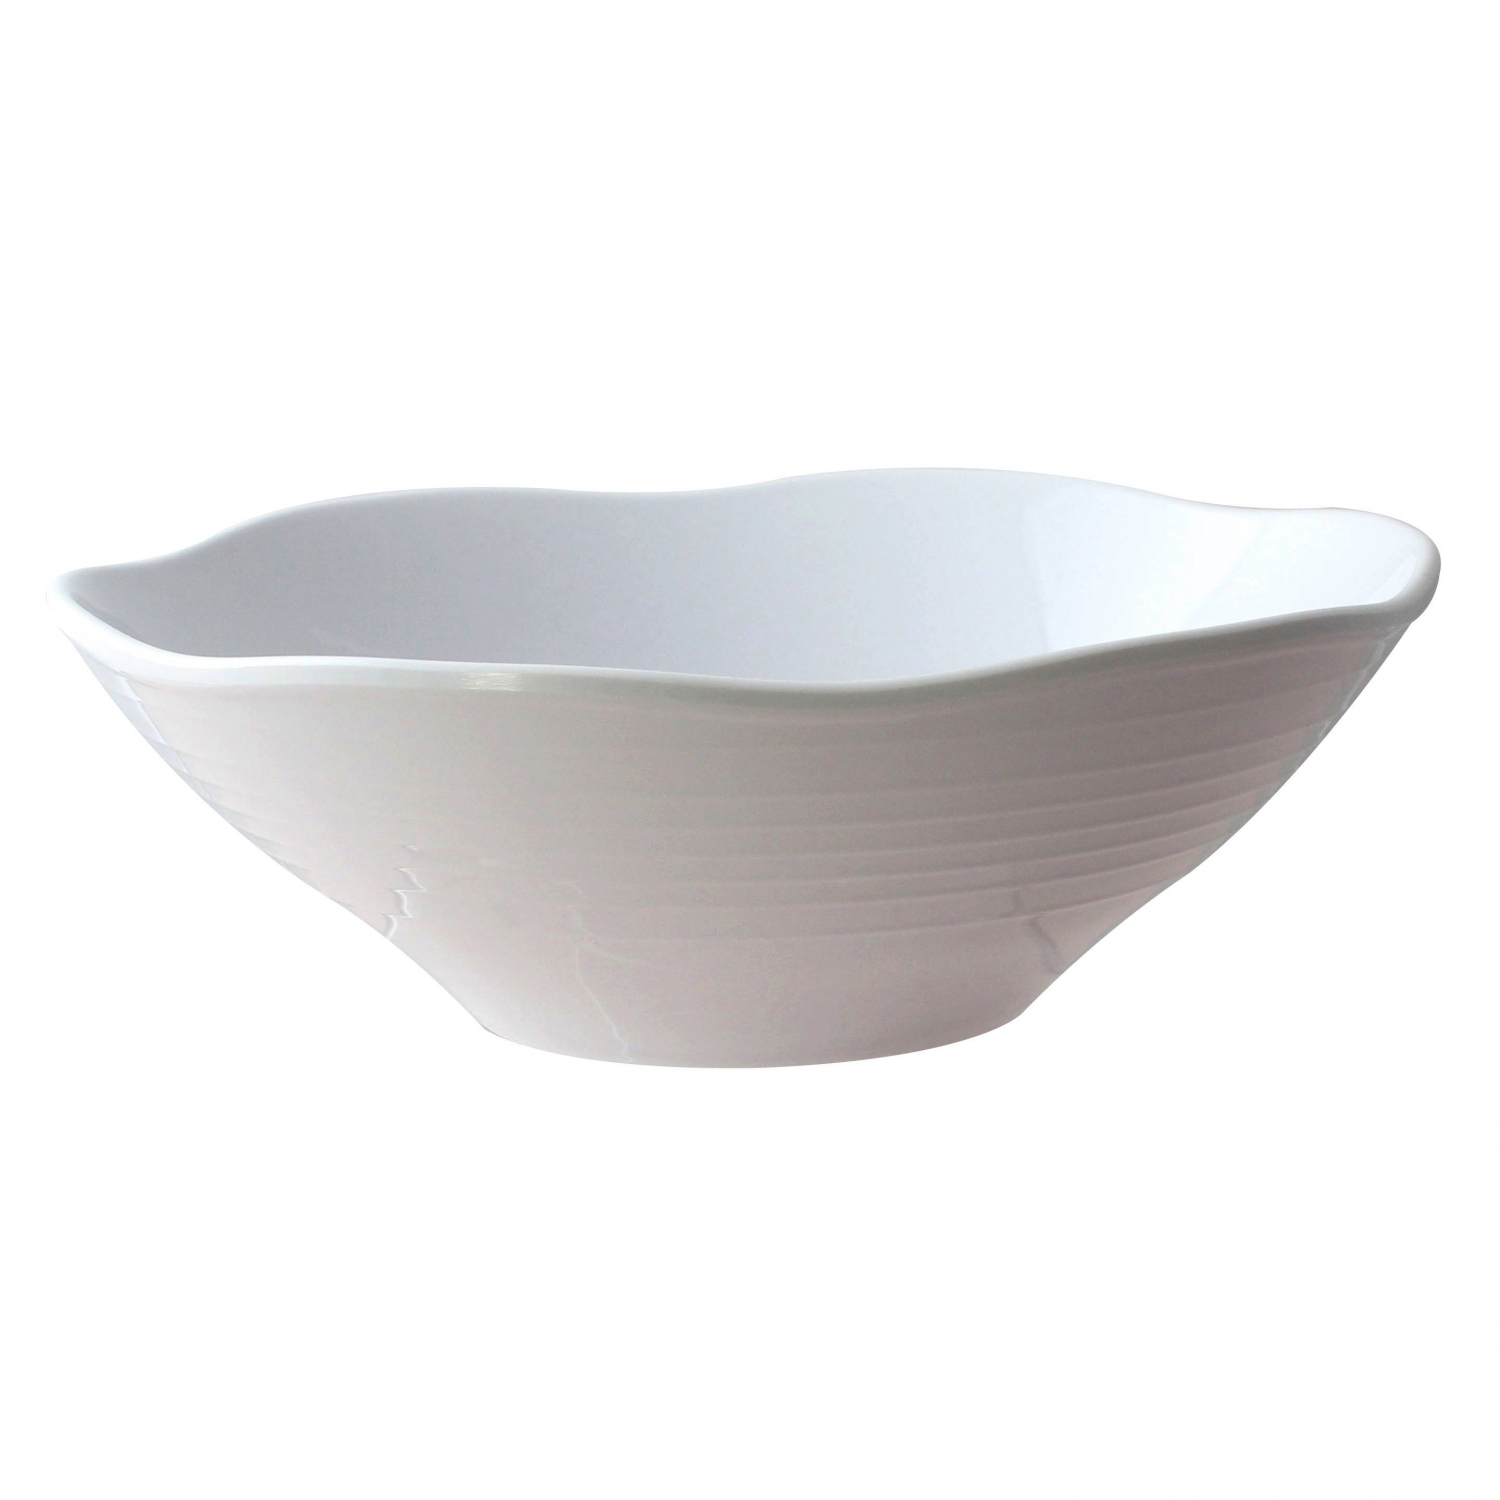 Thunder Group 39093WT Classic White Melamine Soup Bowl 45 oz. - 1 doz.